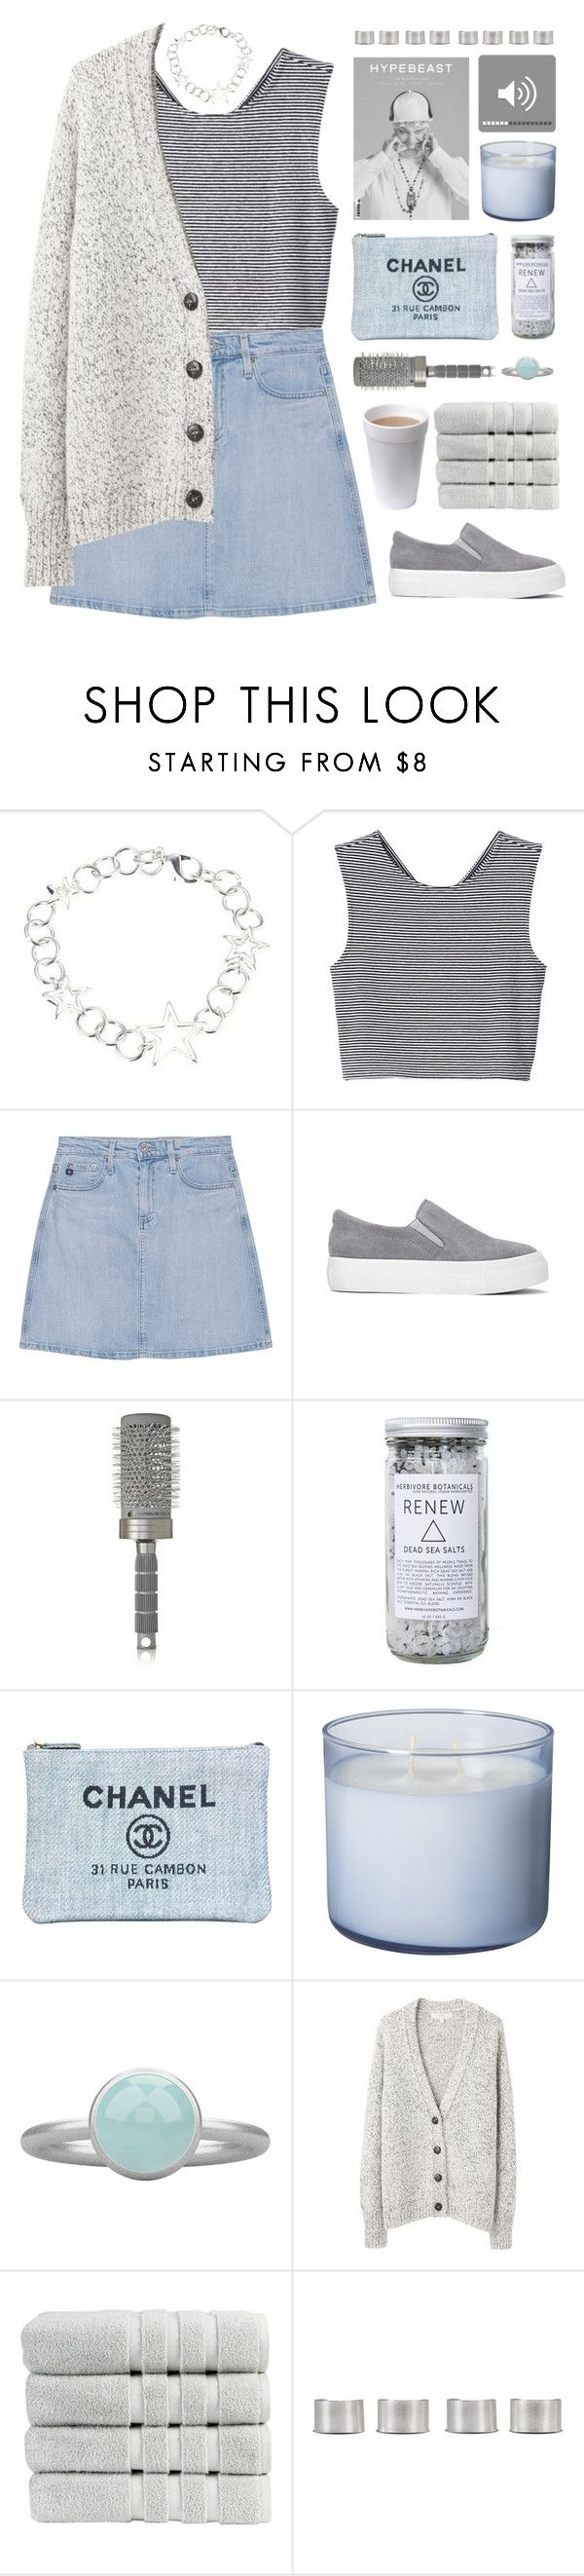 """via's 60k set challenge// read description"" by via-m ❤ liked on Polyvore featuring Monki, AG Adriano Goldschmied, T3, Herbivore, Chanel, Pieces, Vanessa Bruno Athé, Christy, Maison Margiela and vias60ksetchallenge"